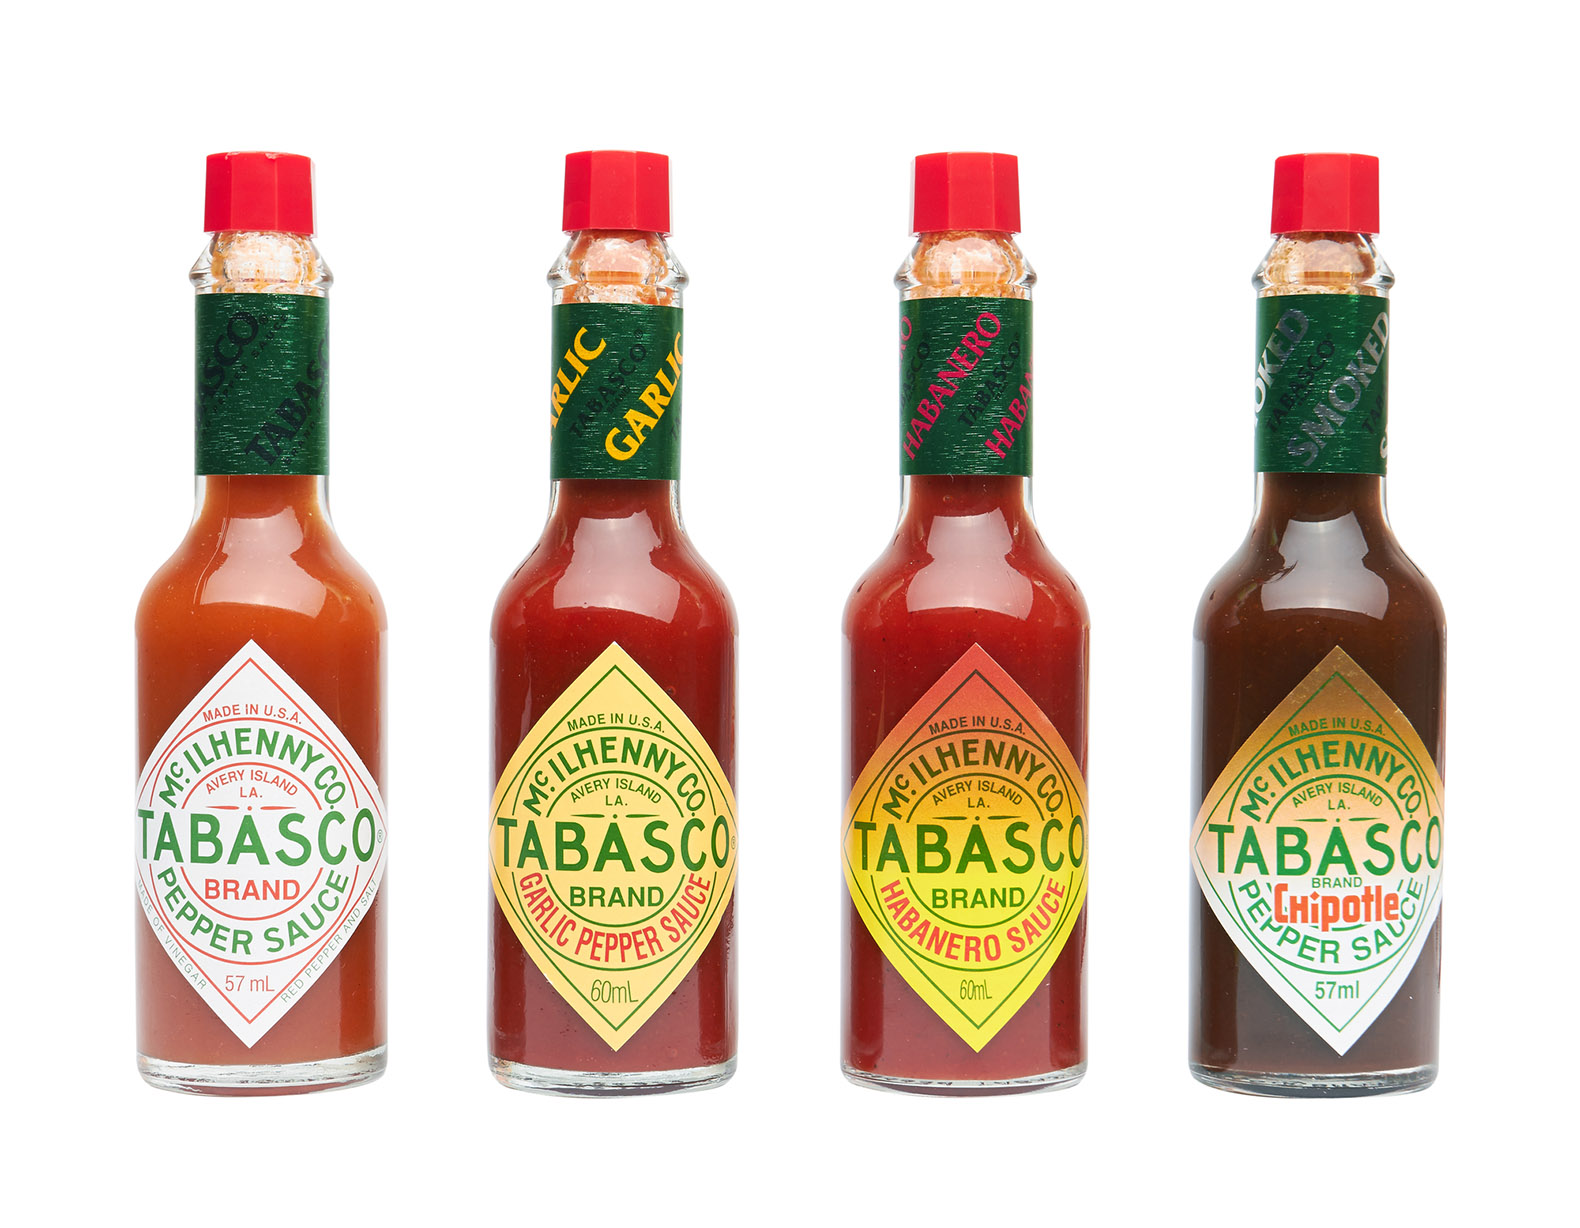 Load up on Tabasco while you can - because the island it comes from is being swallowed by the sea